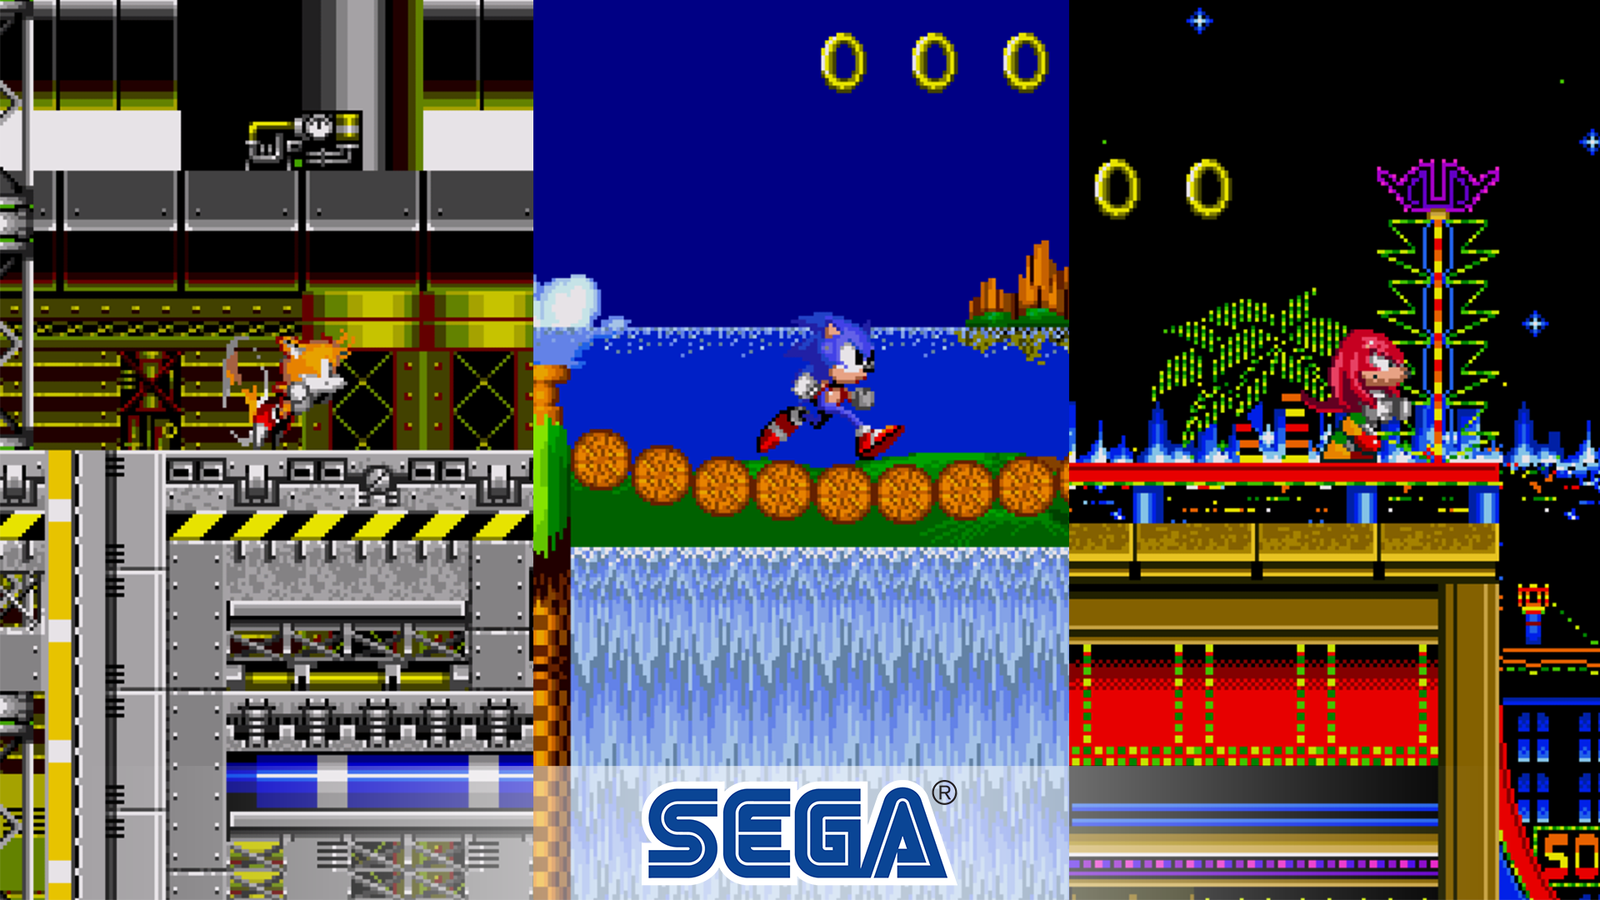 SEGA Just Released 25 Classic Games on the Amazon Fire TV